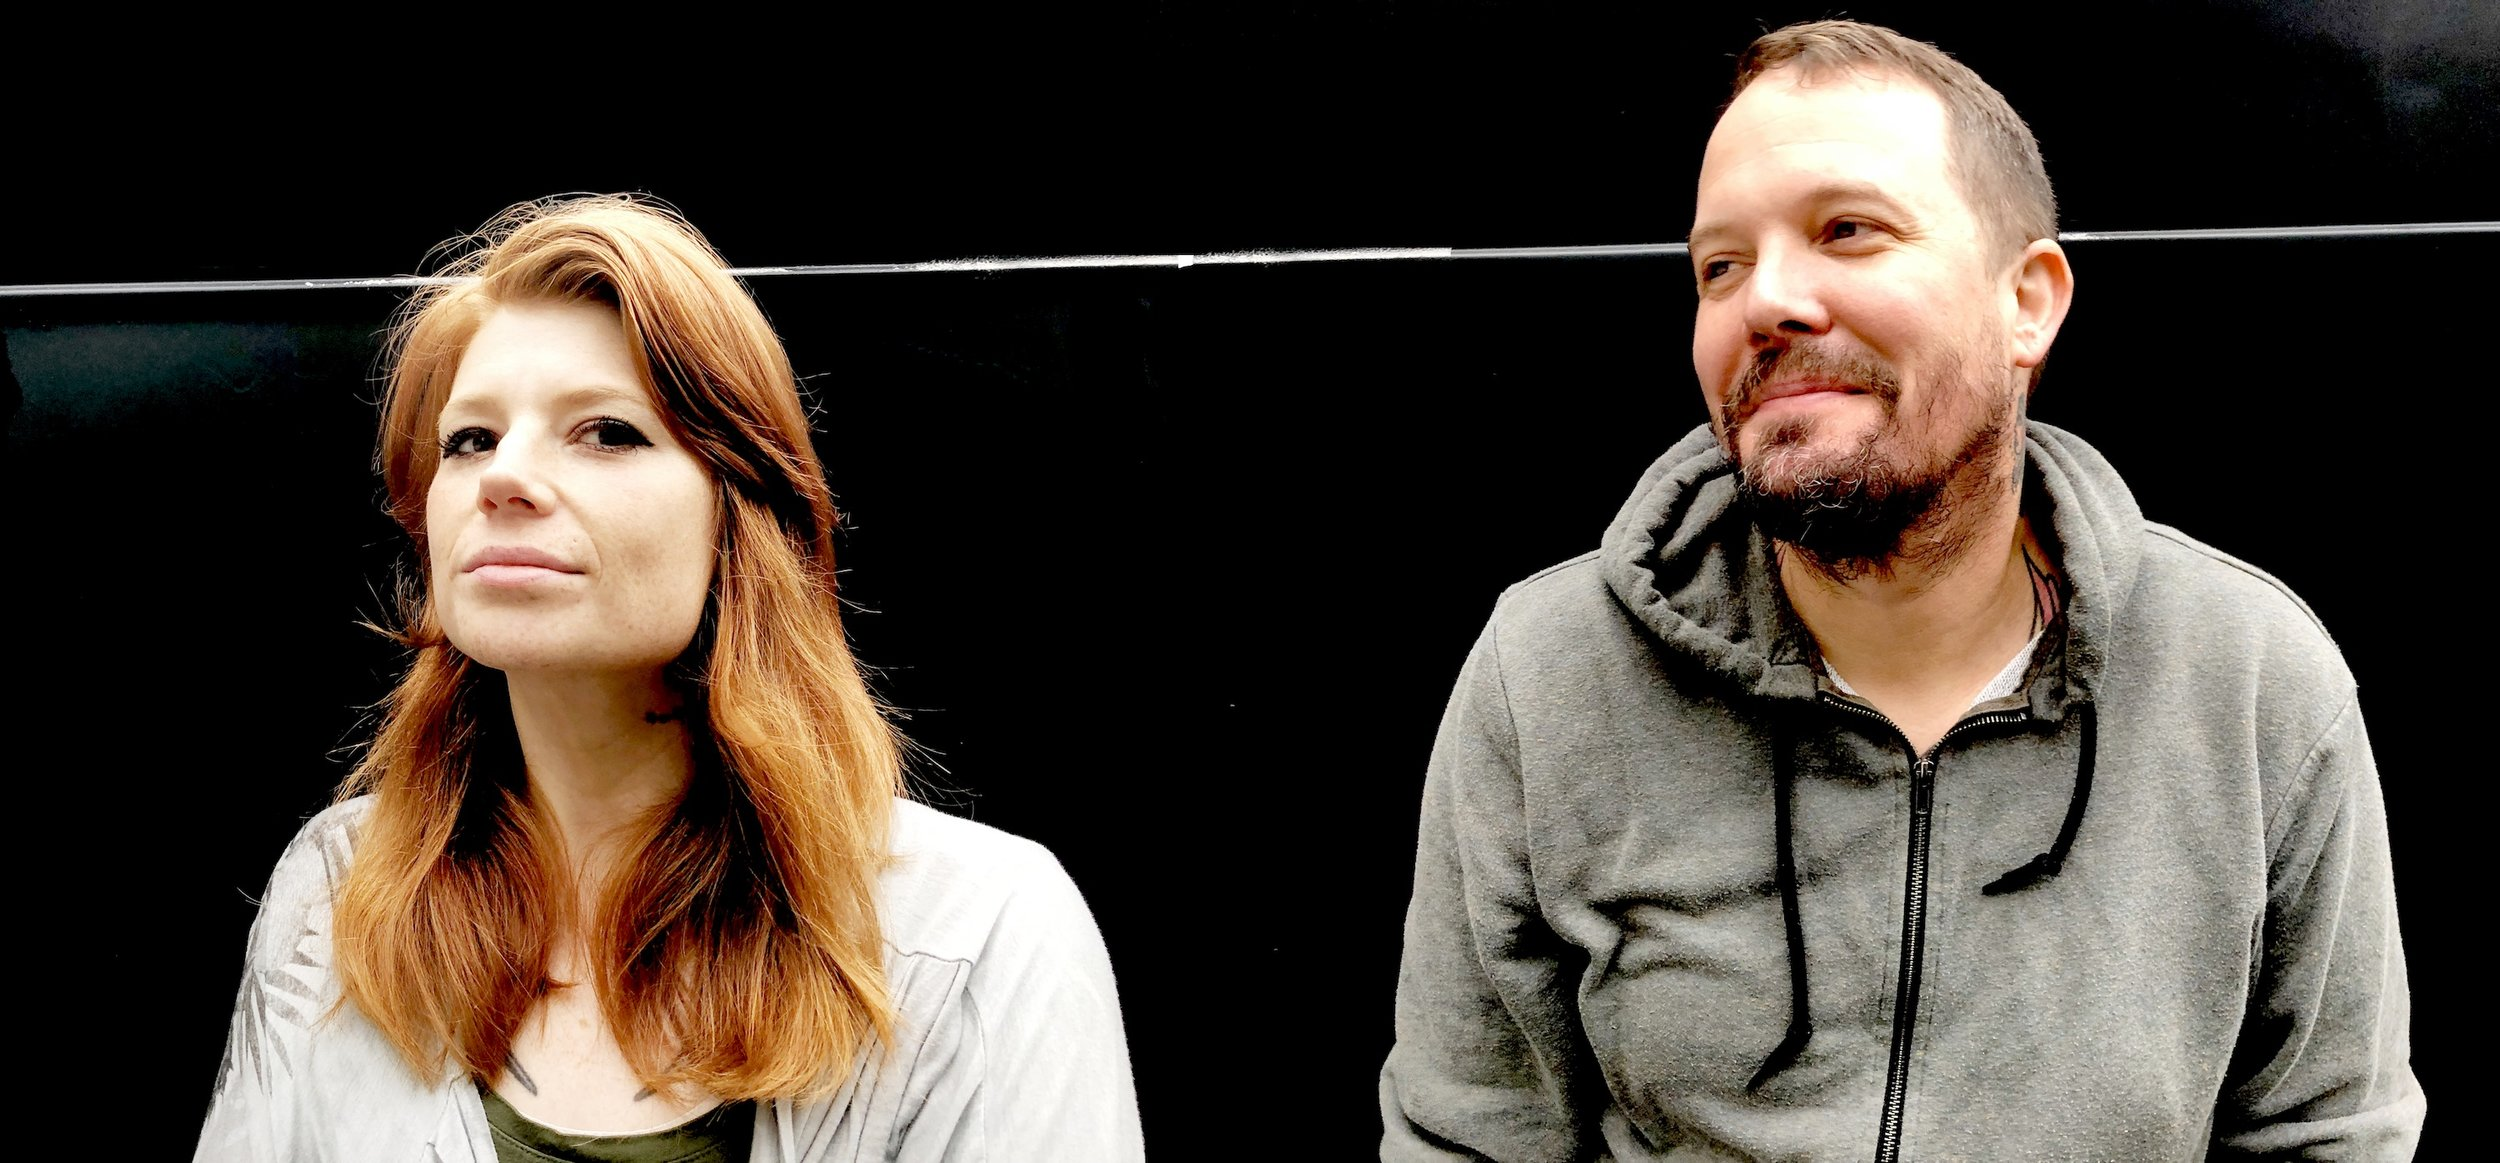 Photo by SNST: Sonja Broach (left), Chris Broach (right)